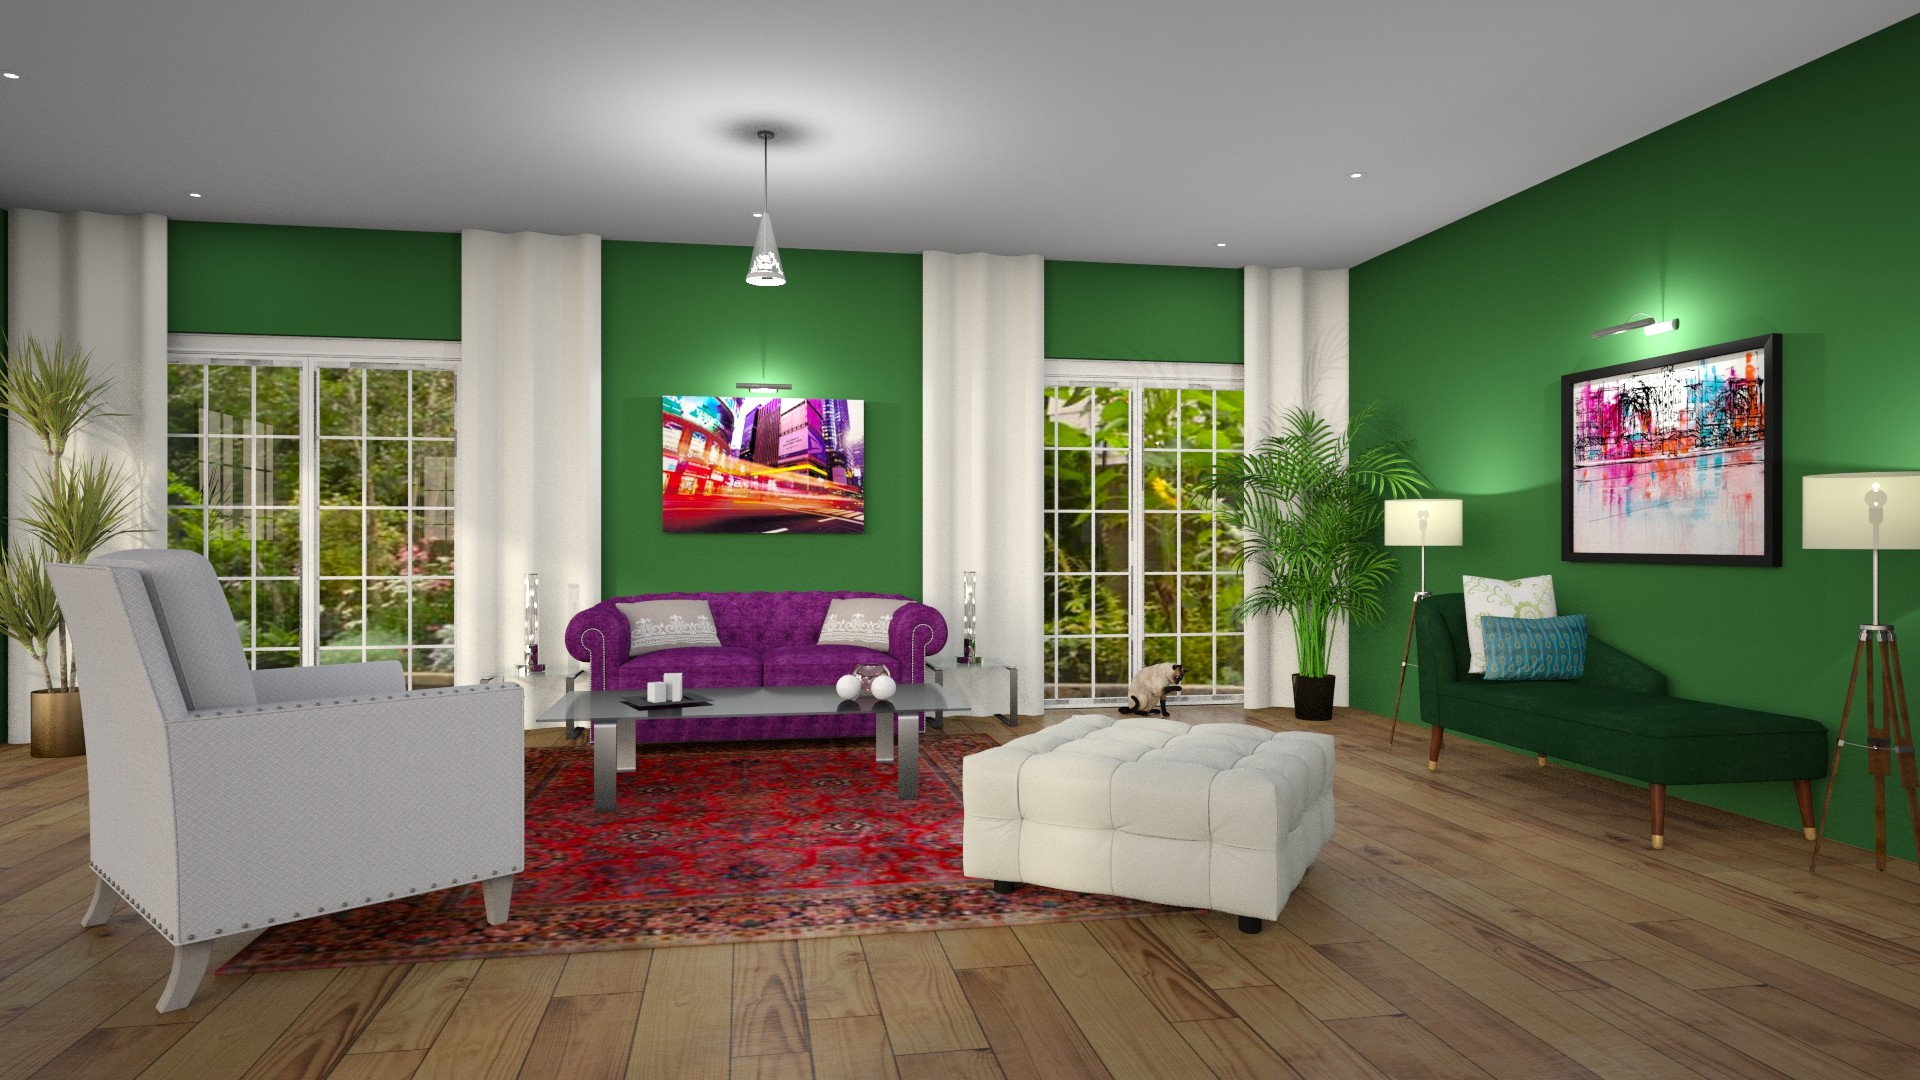 Modern Global Edesign of a Living room using Benjamin Moore's Clover Green.